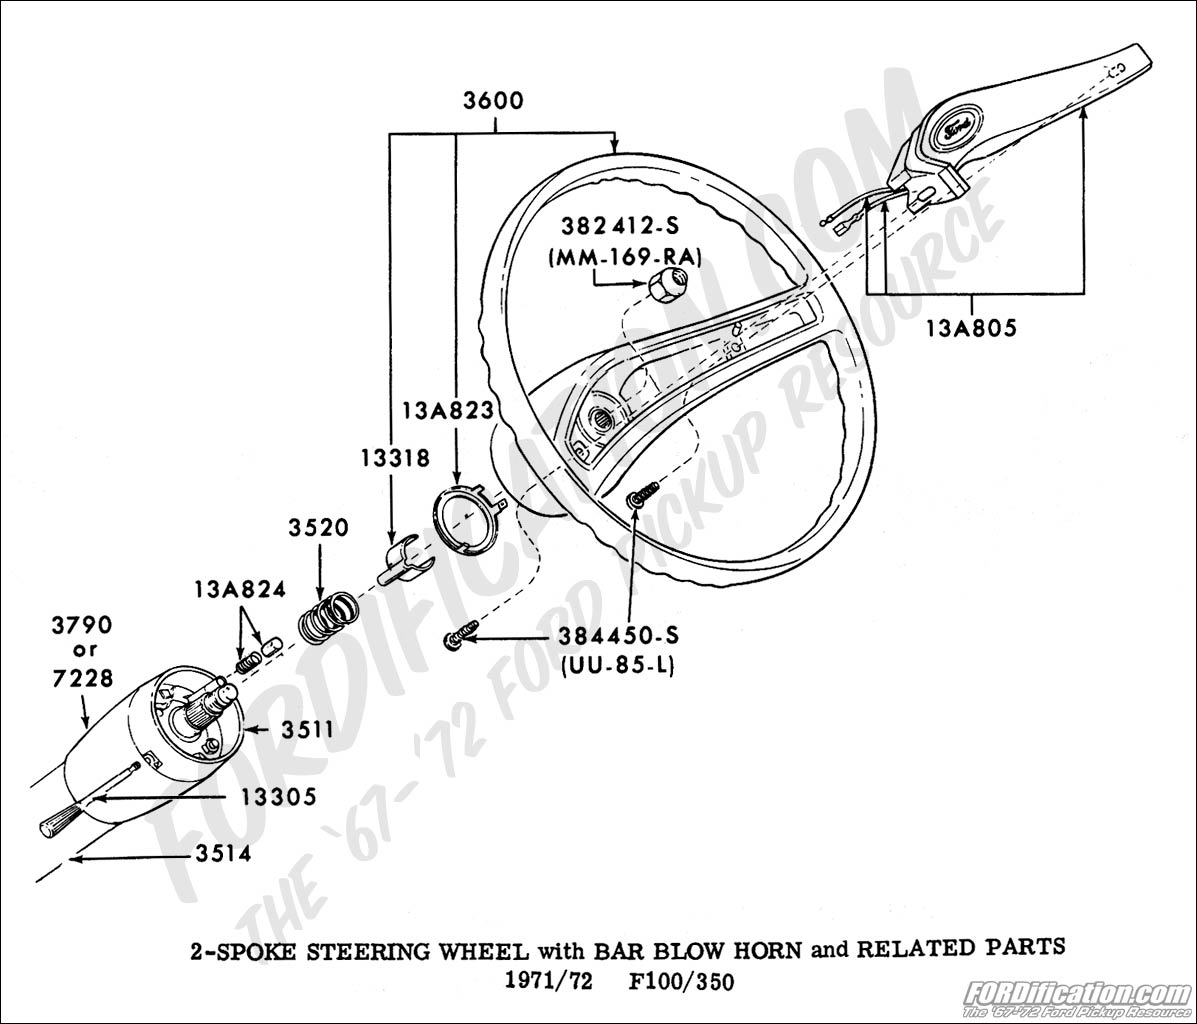 s10 chevy steering diagram | wiring diagram database ford explorer steering wheel wiring harness diagram #15